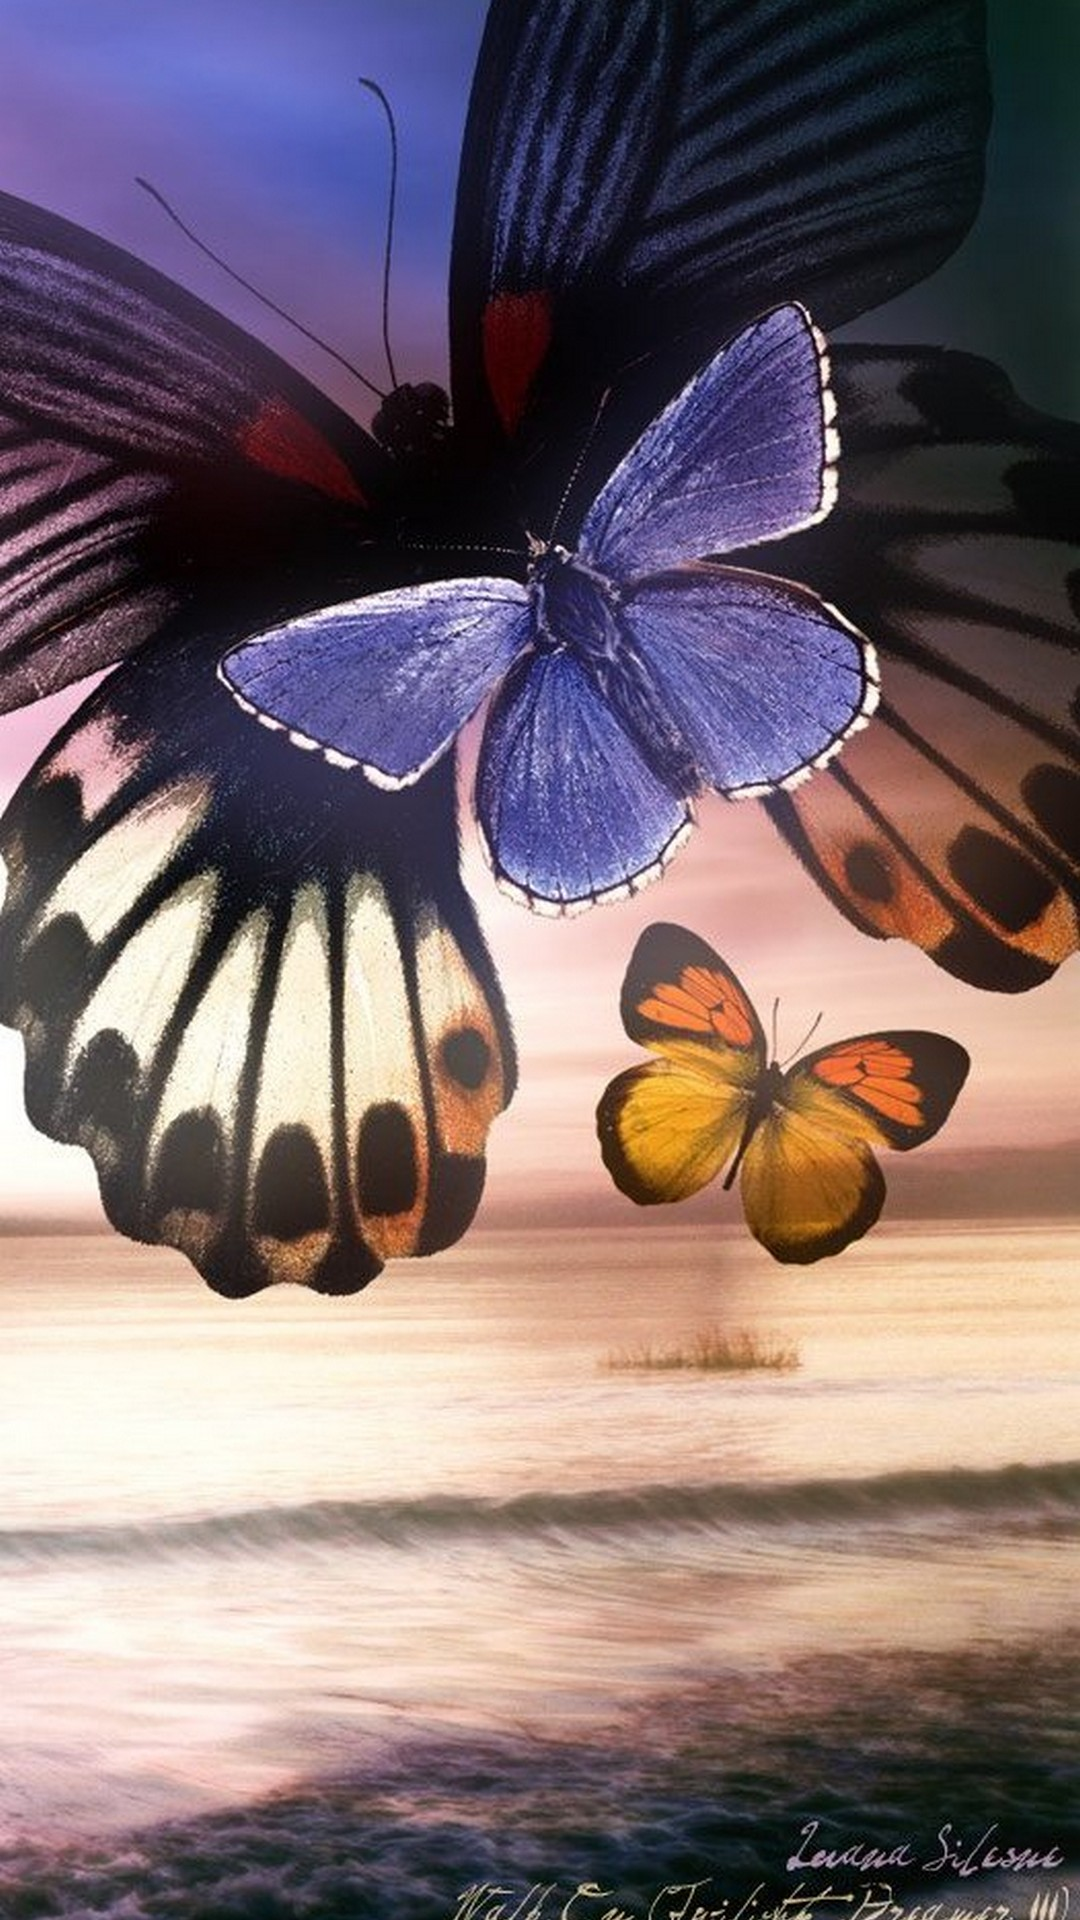 hd wallpapers for mobile,moths and butterflies,butterfly,insect,invertebrate,pollinator